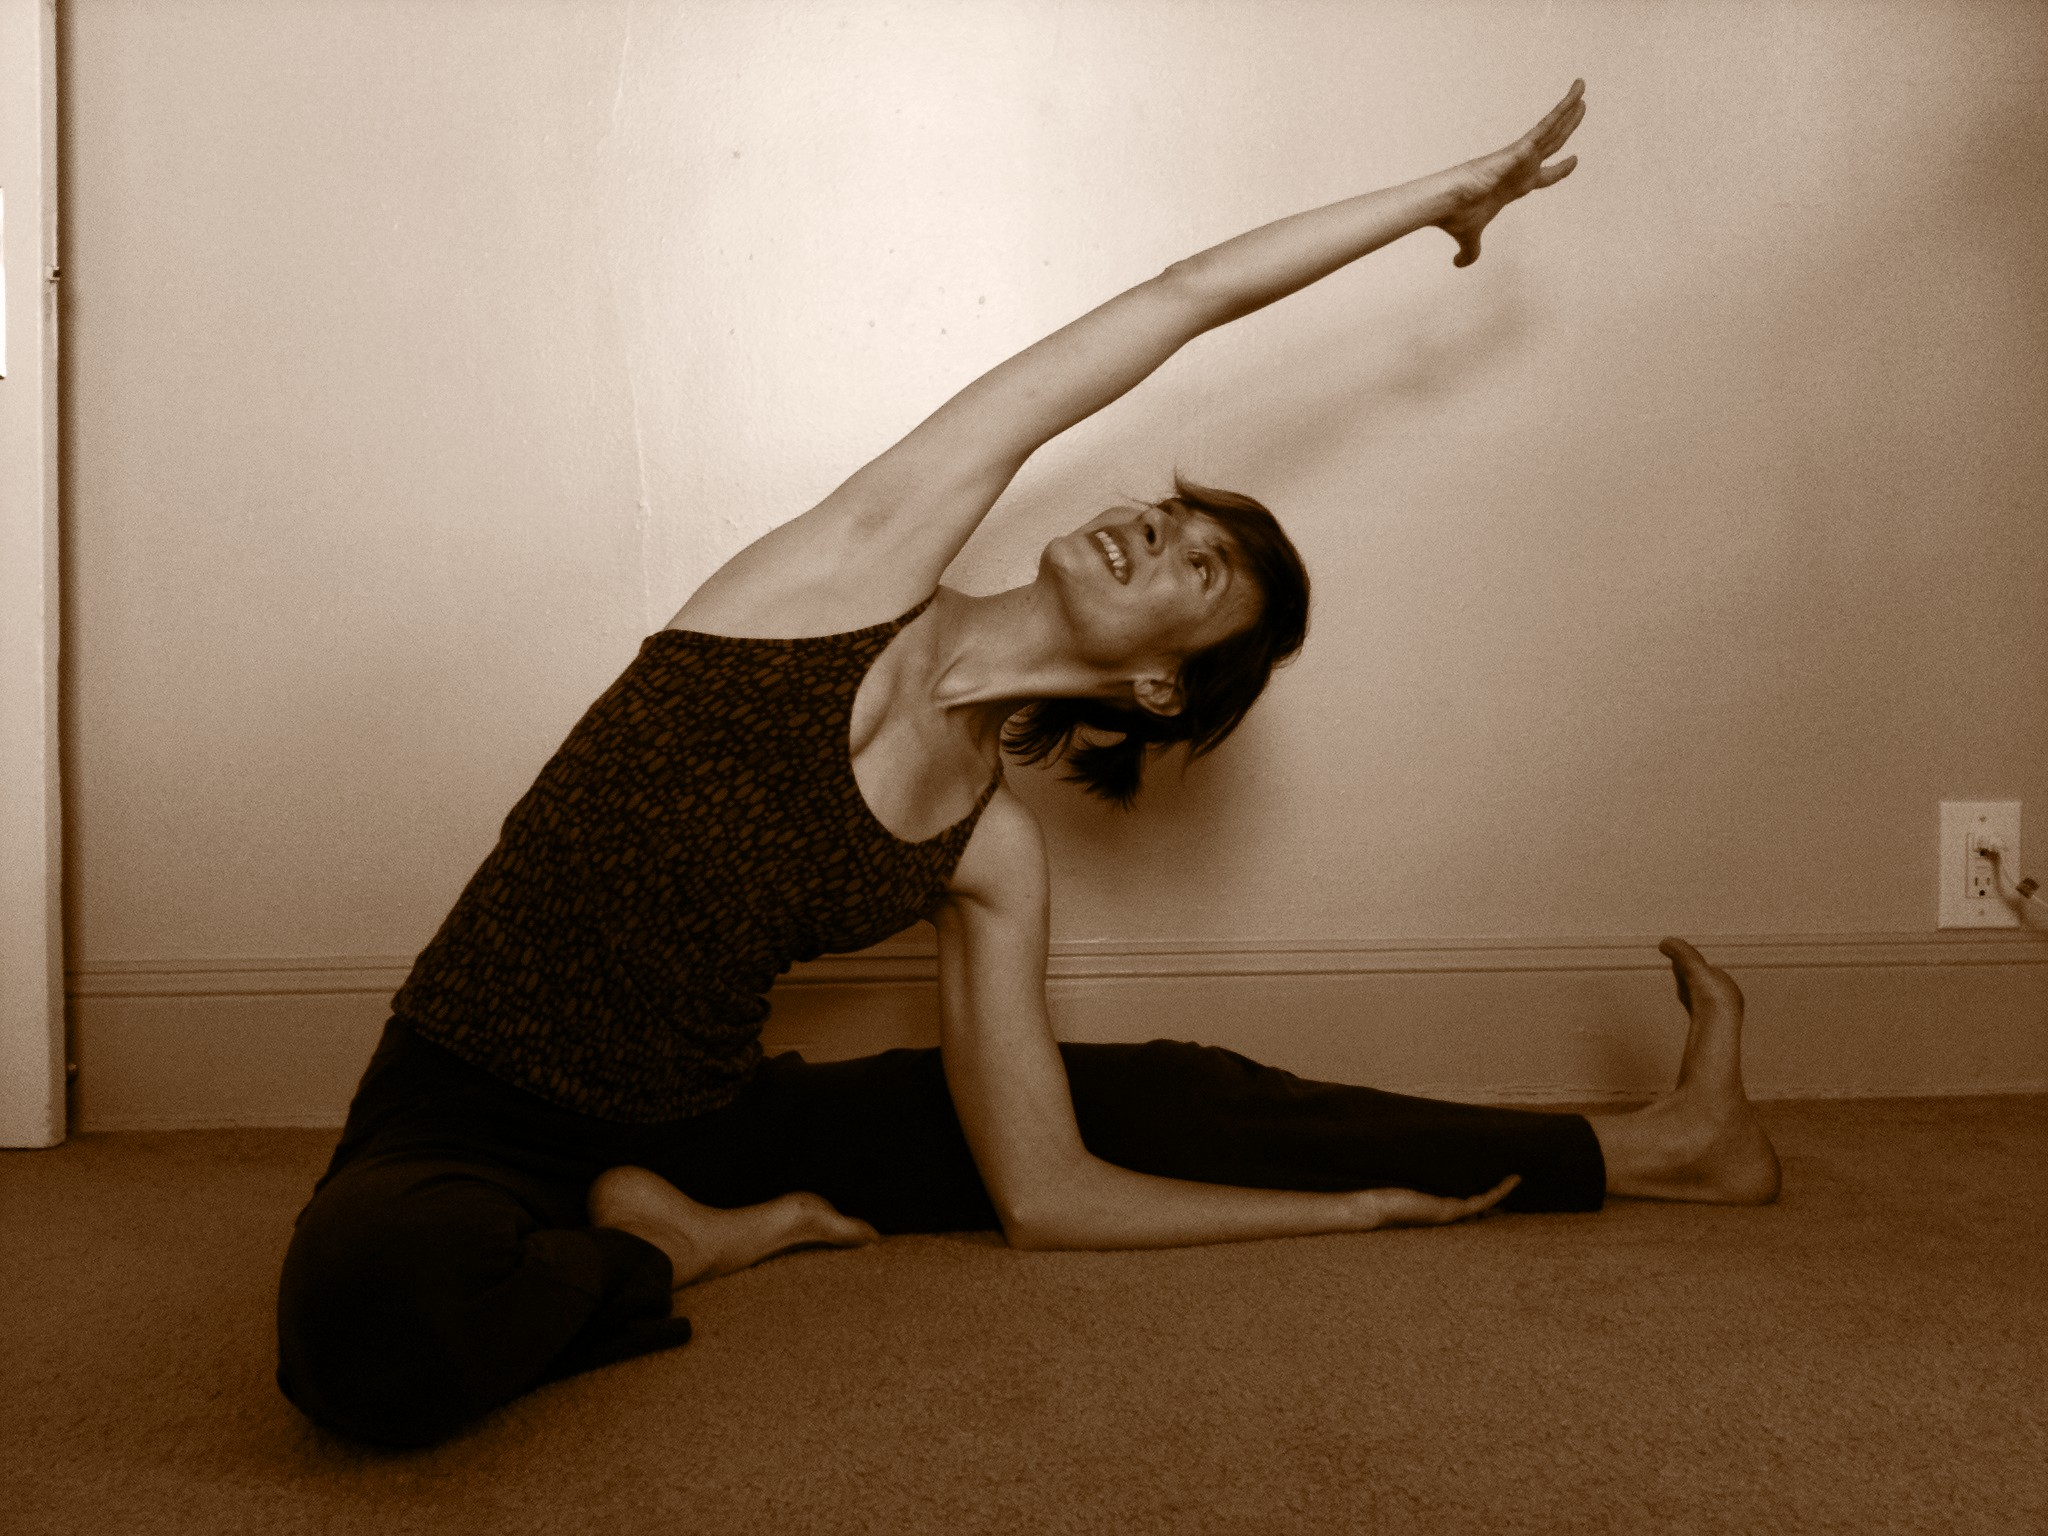 Yoga–Just Another Way of Getting a Good Workout, Right?  NOT!